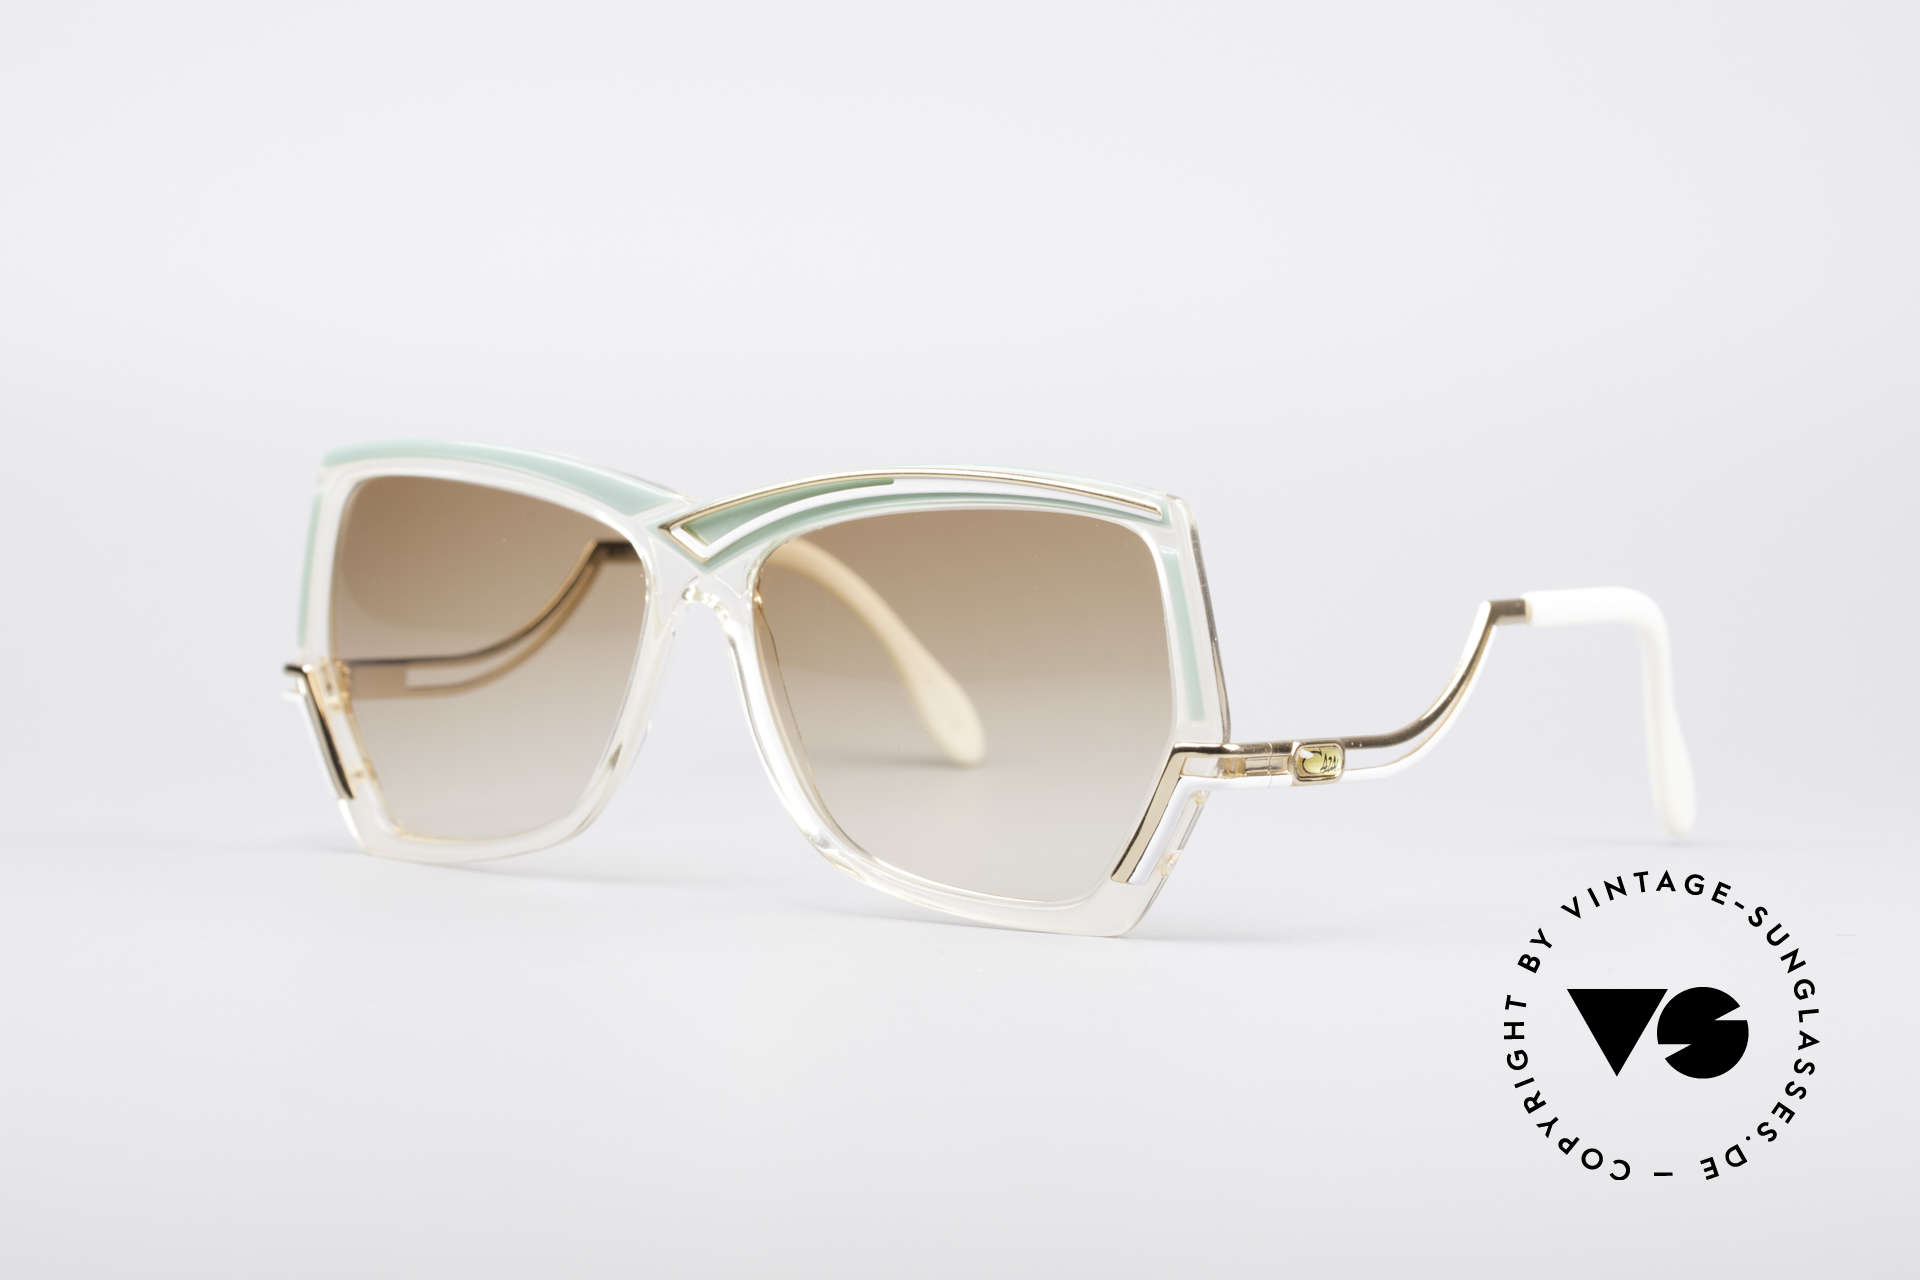 Cazal 178 Extraordinary Sunglasses, ornamented frame & fancy temples - true vintage!, Made for Women